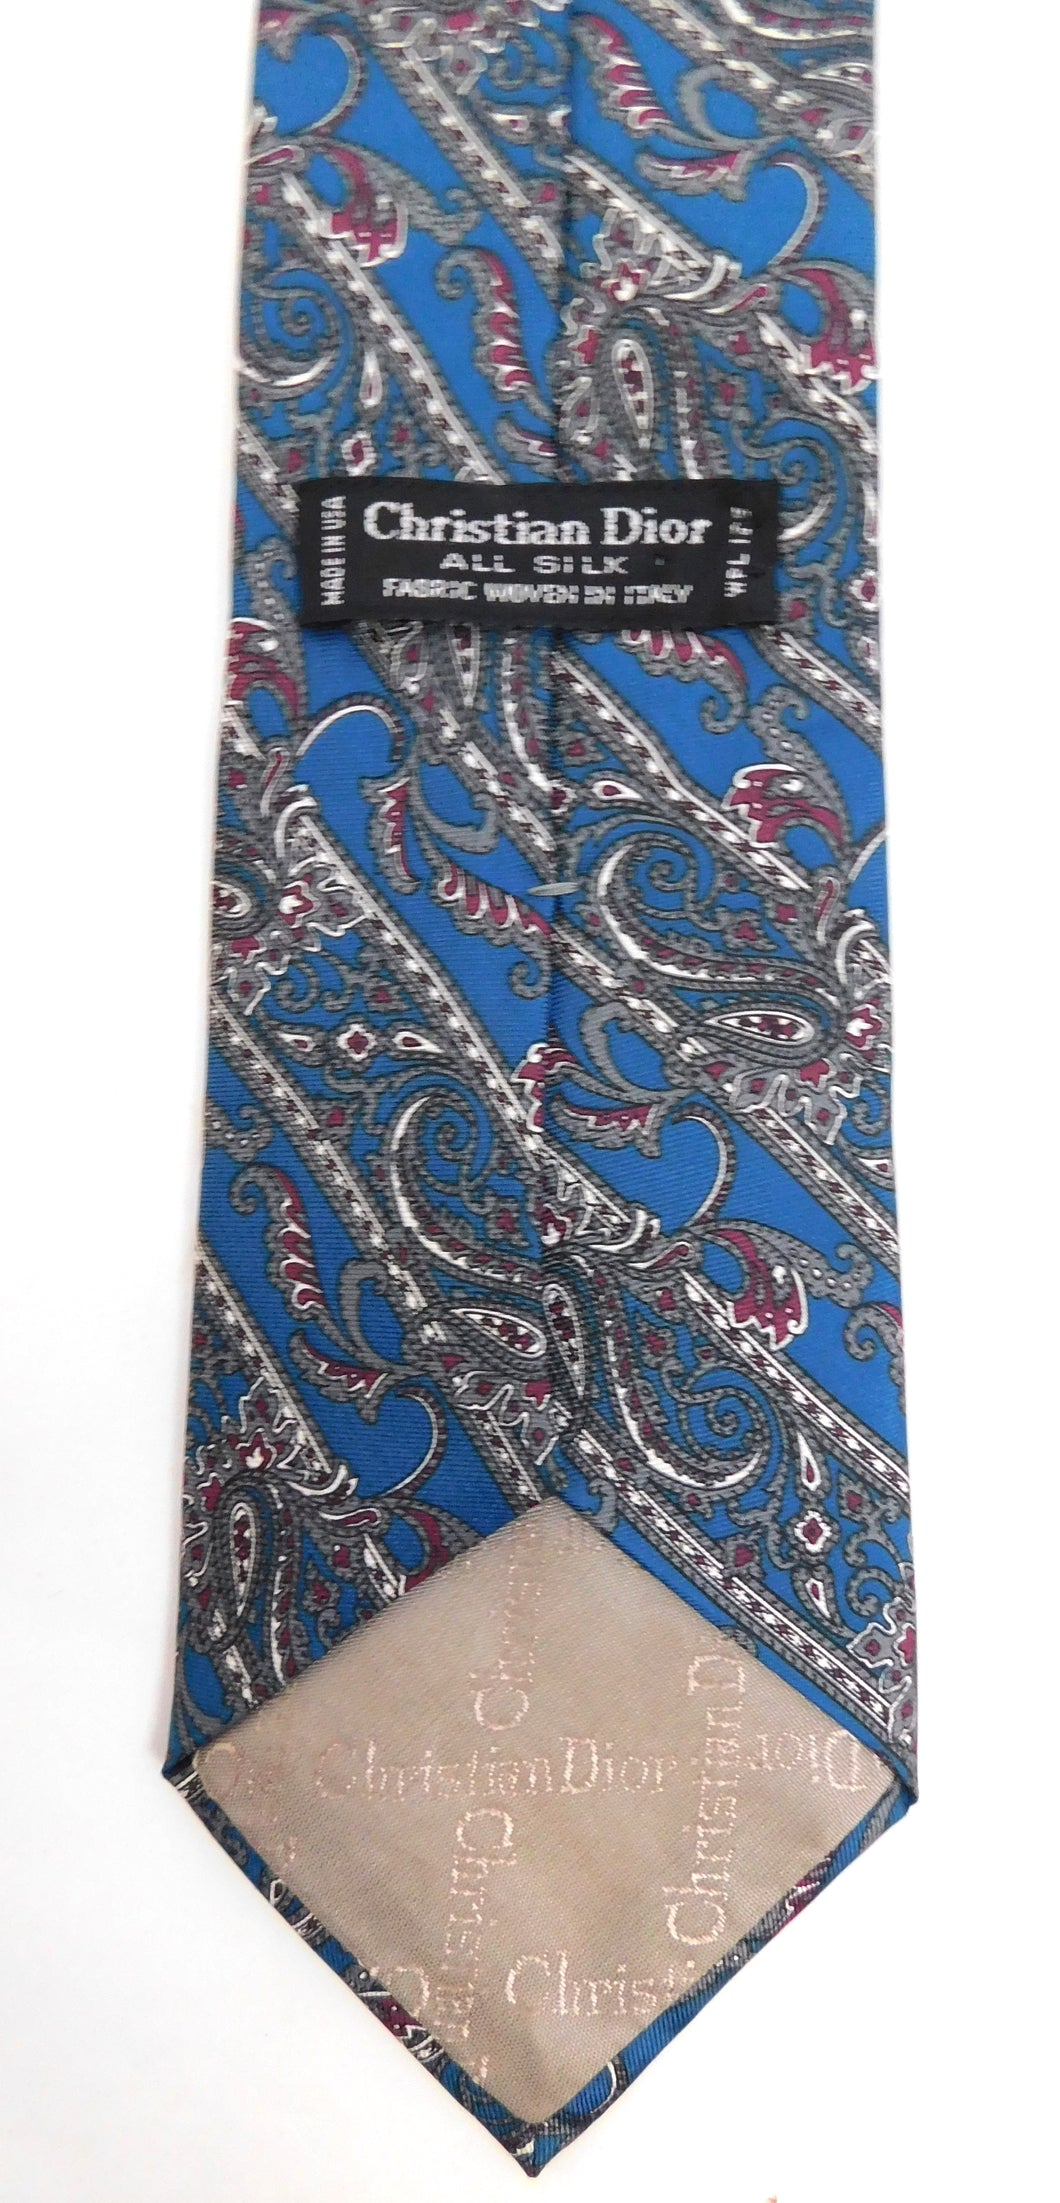 Vintage mens paisley printed tie by Christian Dior